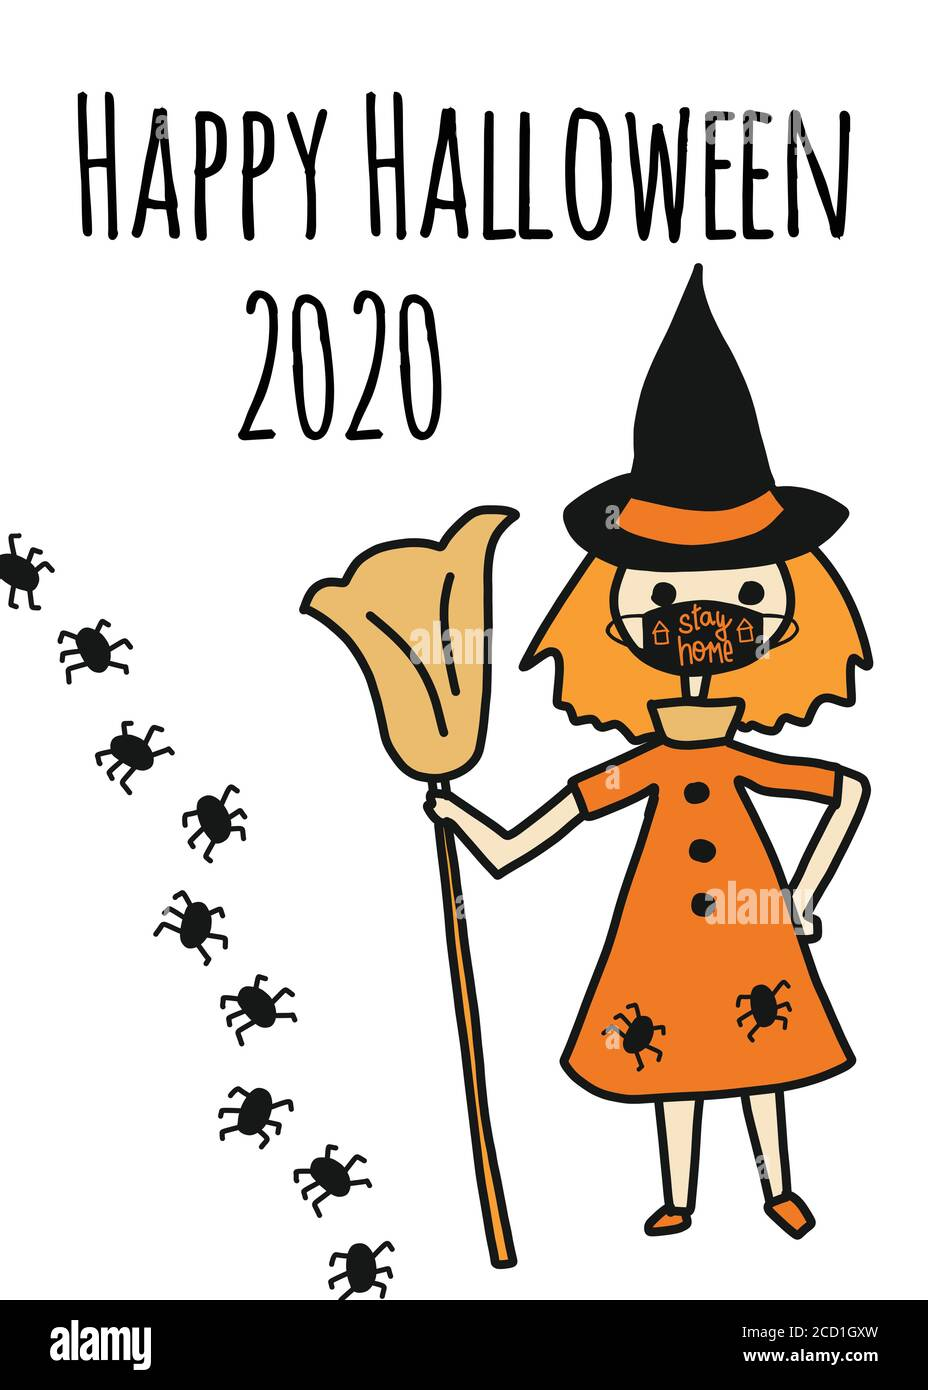 Halloween Template 2020 Happy Halloween 2020 greeting card template. Witch wearing a face